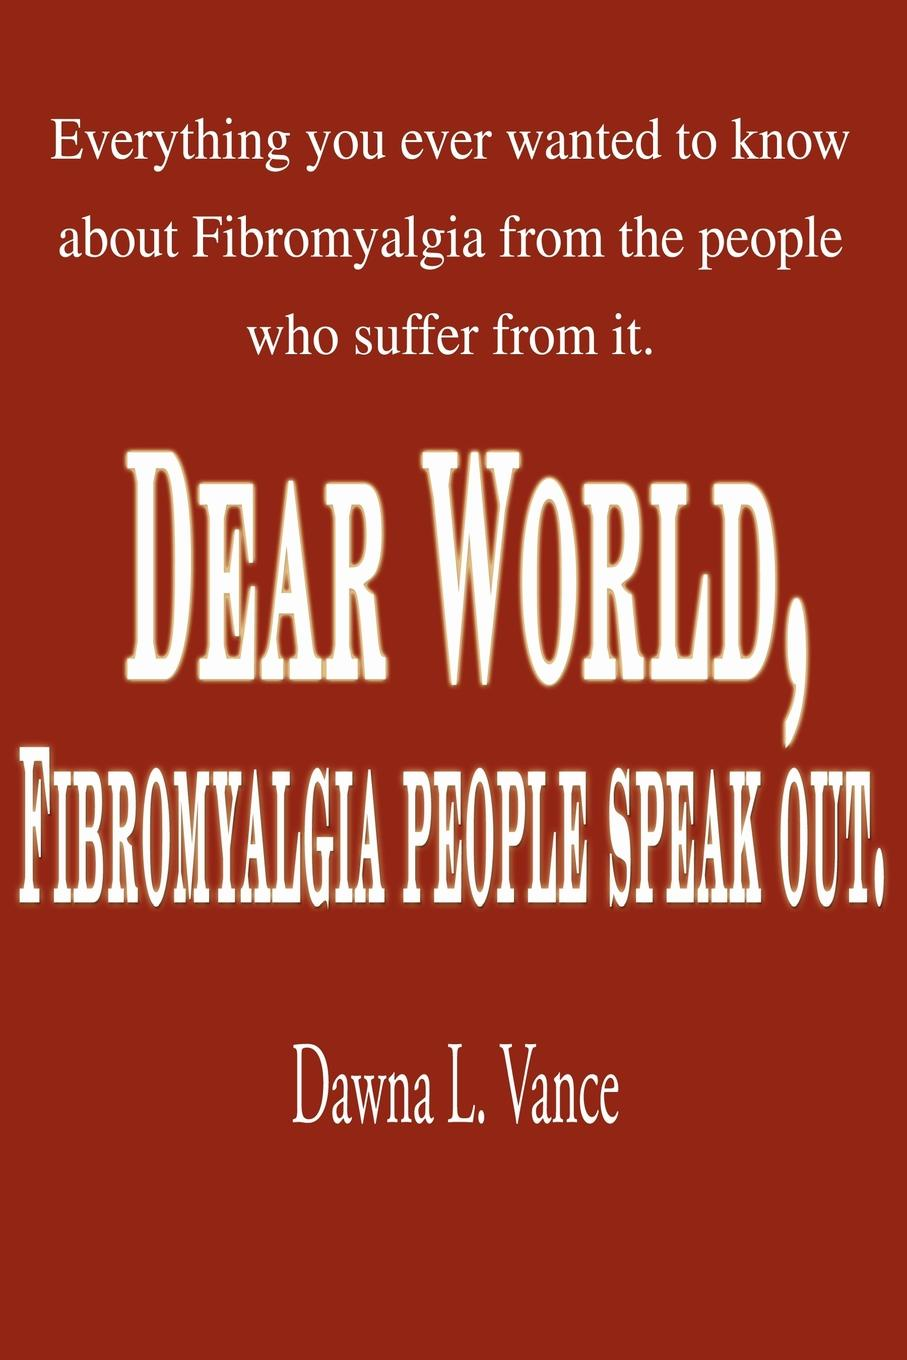 Dawna L. Vance Dear World, Fibromyalgia People Speak Out. Everything You Ever Wanted to Know about Fibromyalgia from the People Who Suffer from It. who who sell out